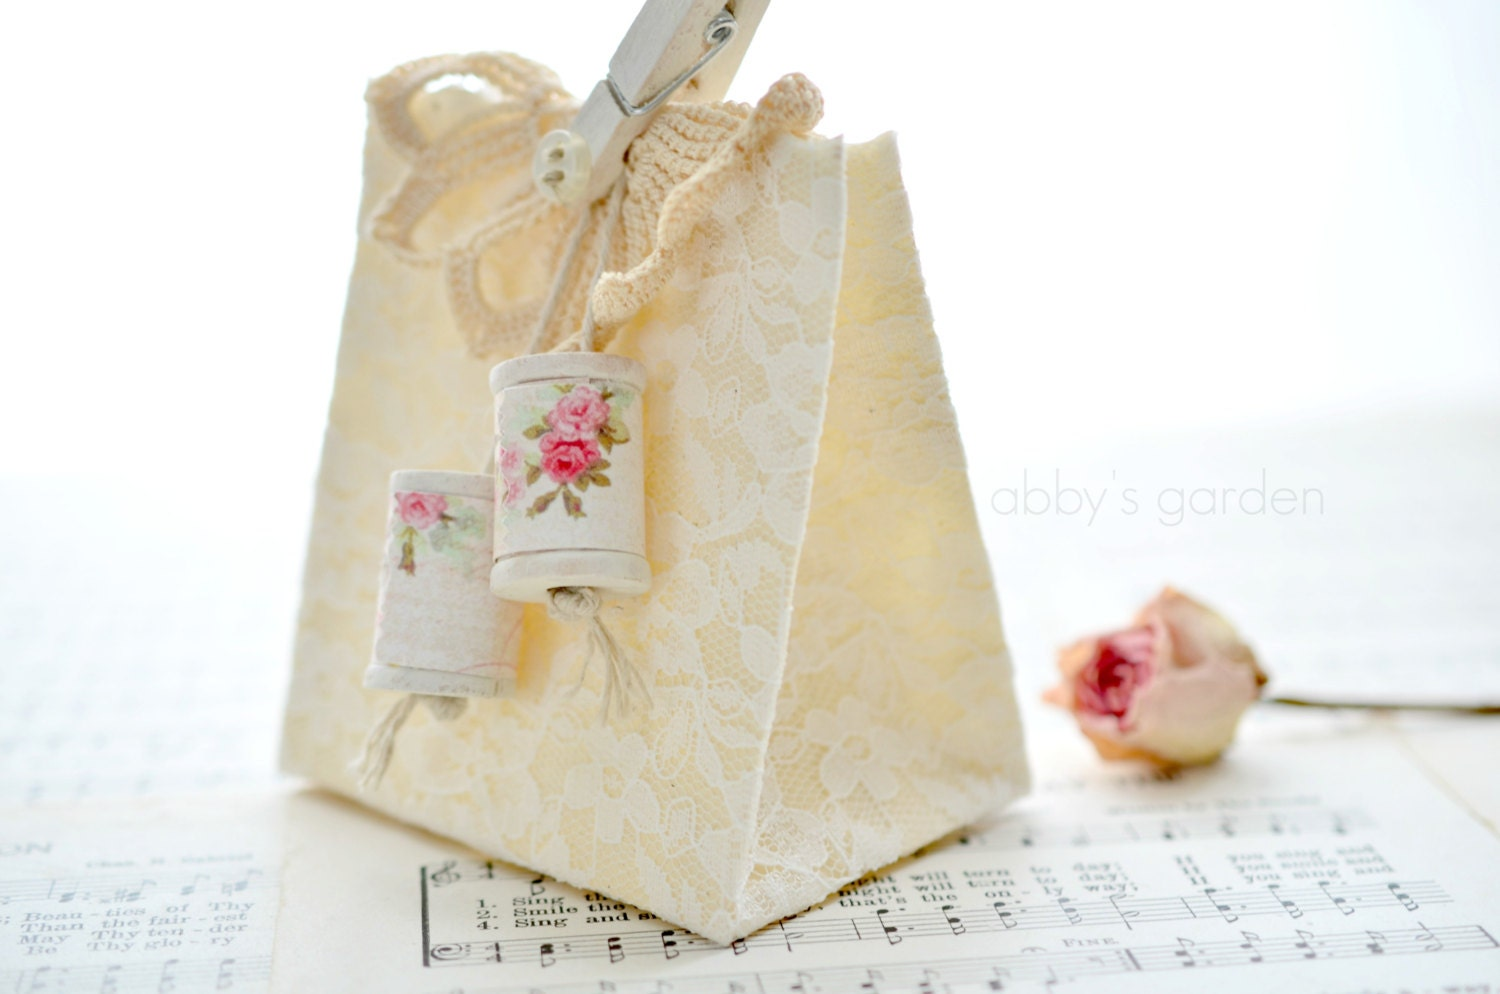 Cottage Chic Lace Covered Gift Bag (with accessories) - AbbysPaperieGarden